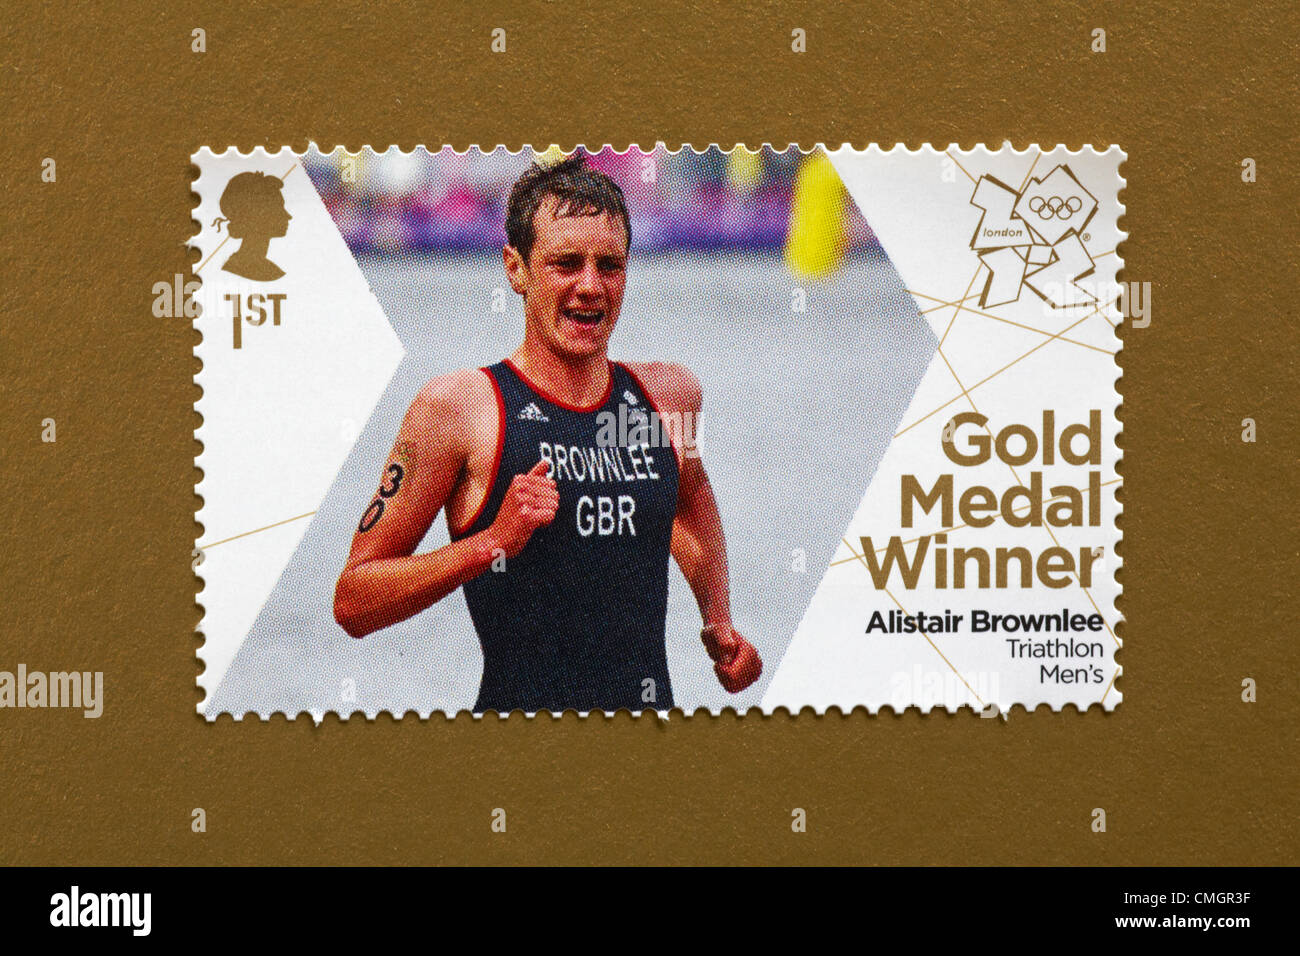 UK Wednesday 8 August 2012. Stamp to honour gold medal winner Alistair Brownlee in the Triathlon Men's event. - Stock Image